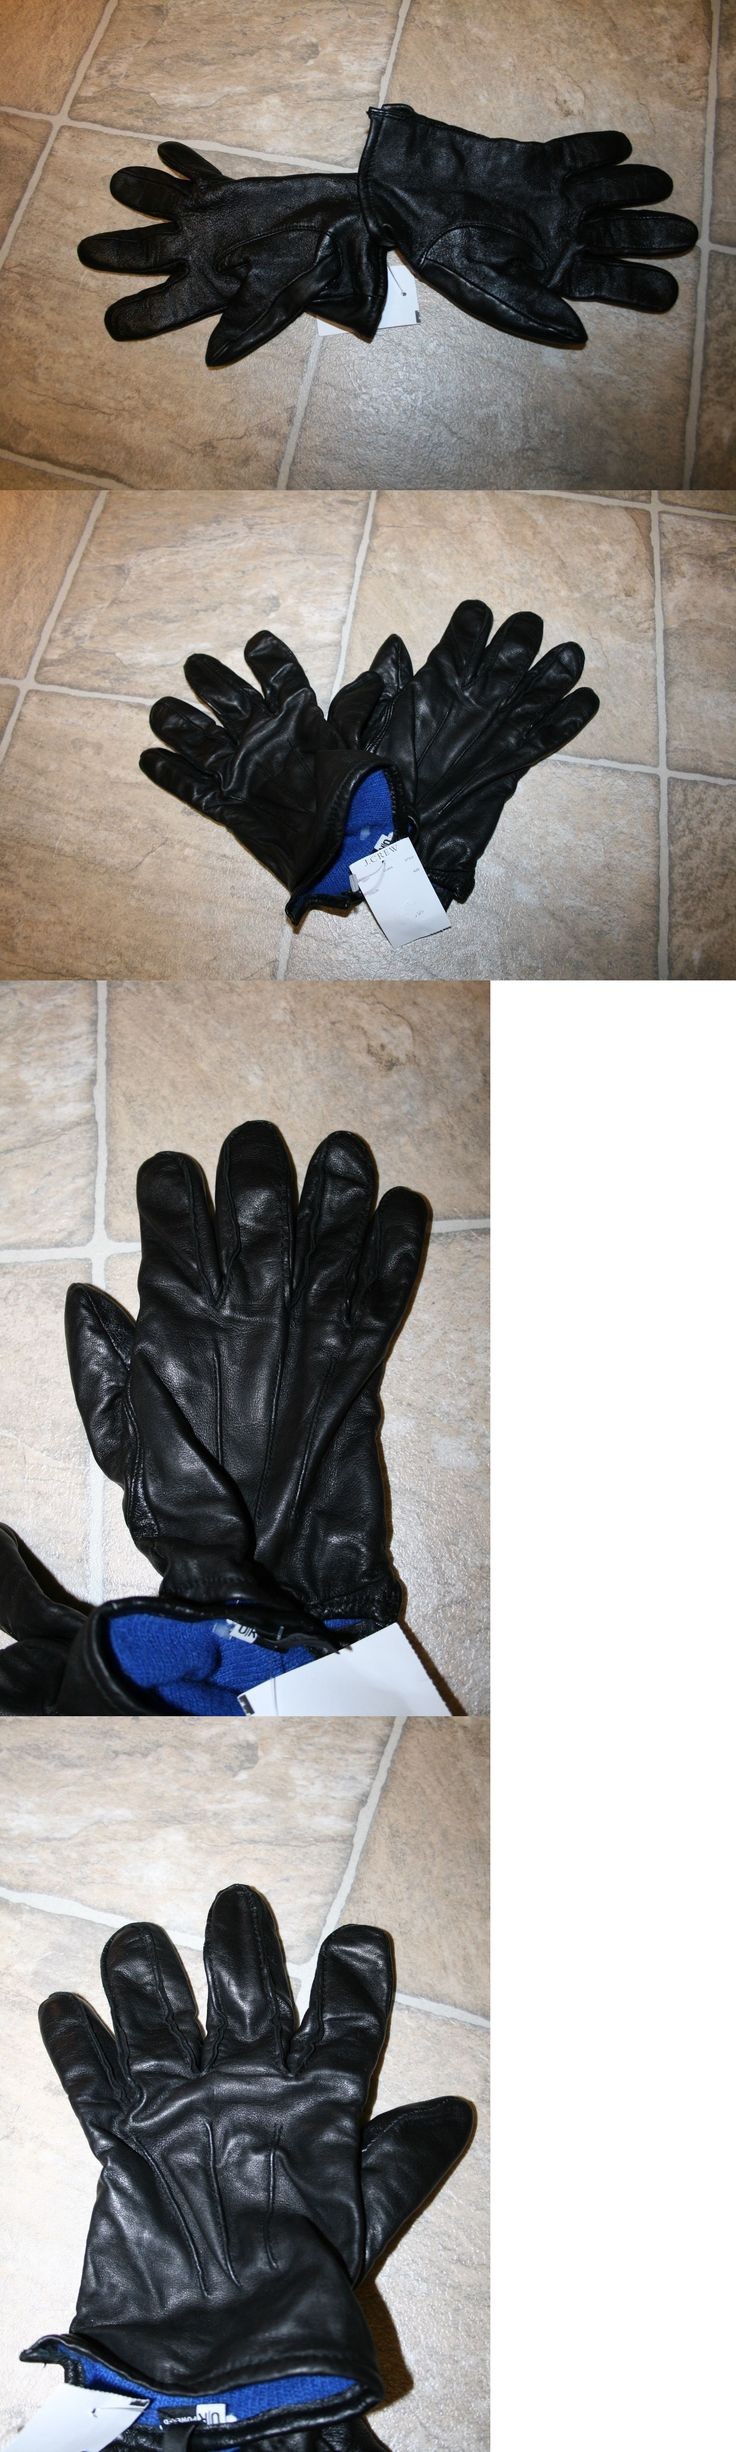 Womens leather smartphone gloves - Gloves And Mittens 169278 New J Crew Cashmere Lined Leather Smartphone Gloves Black